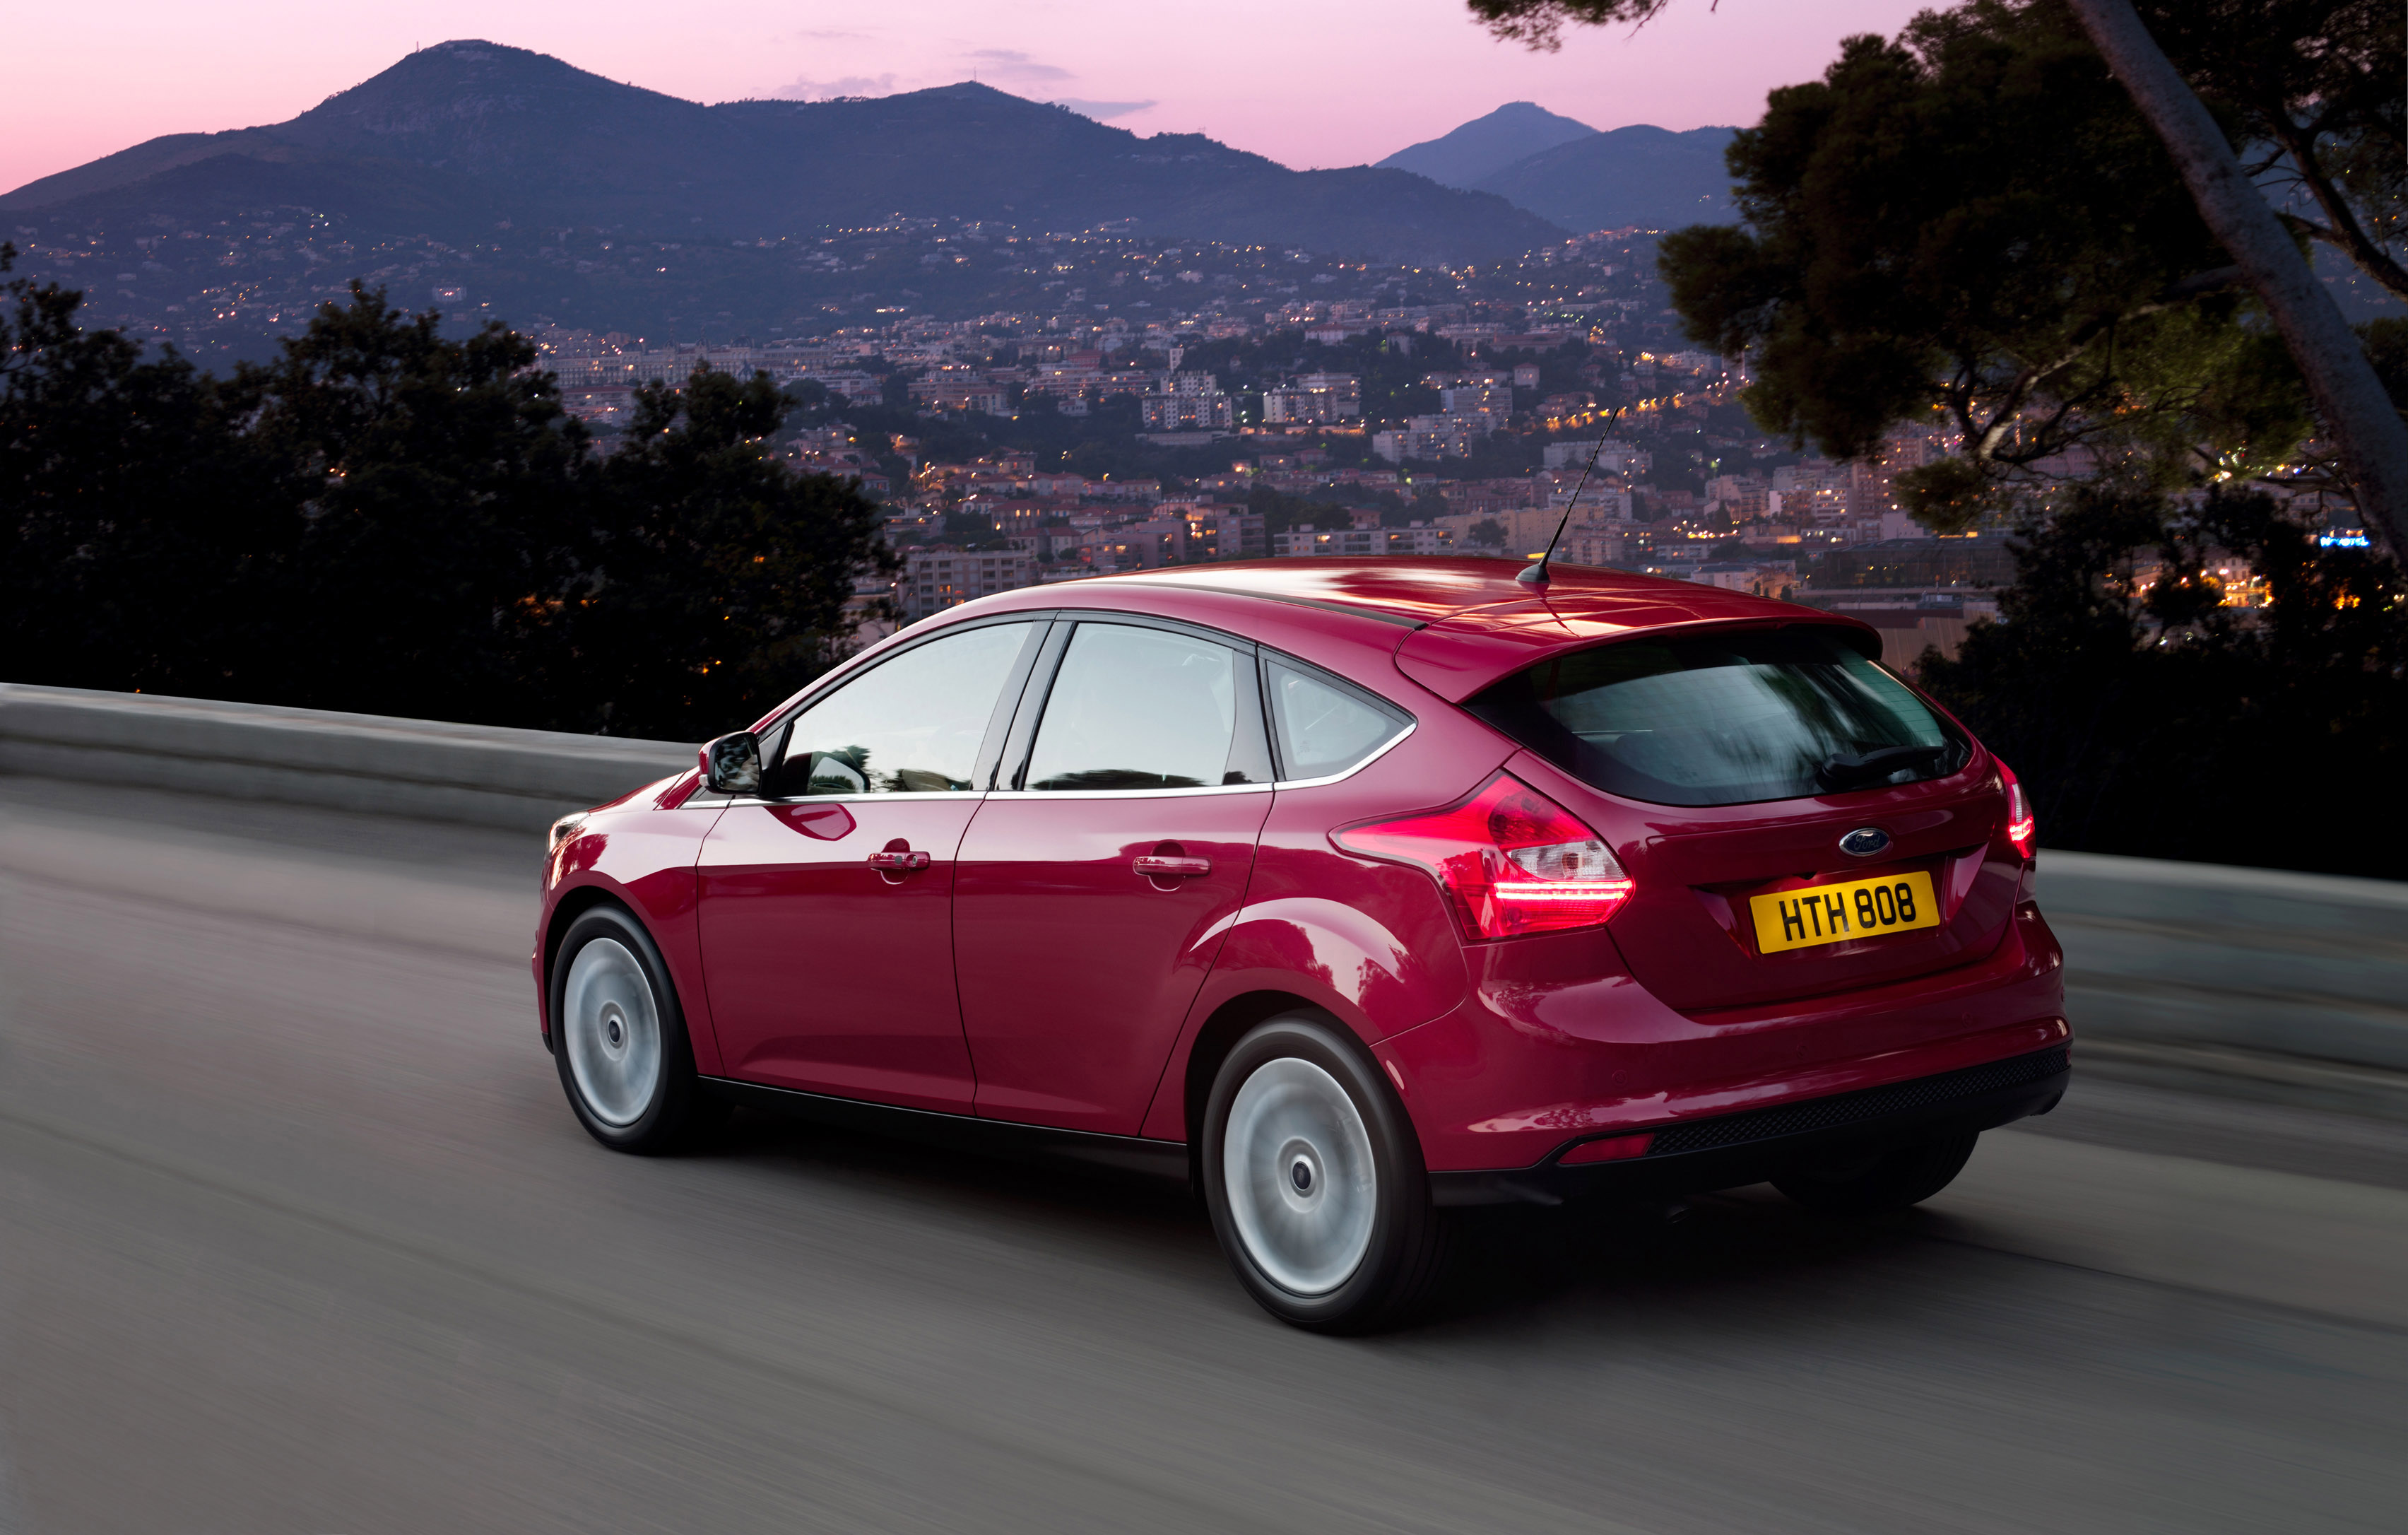 2012 Ford Focus 5-door hatchback